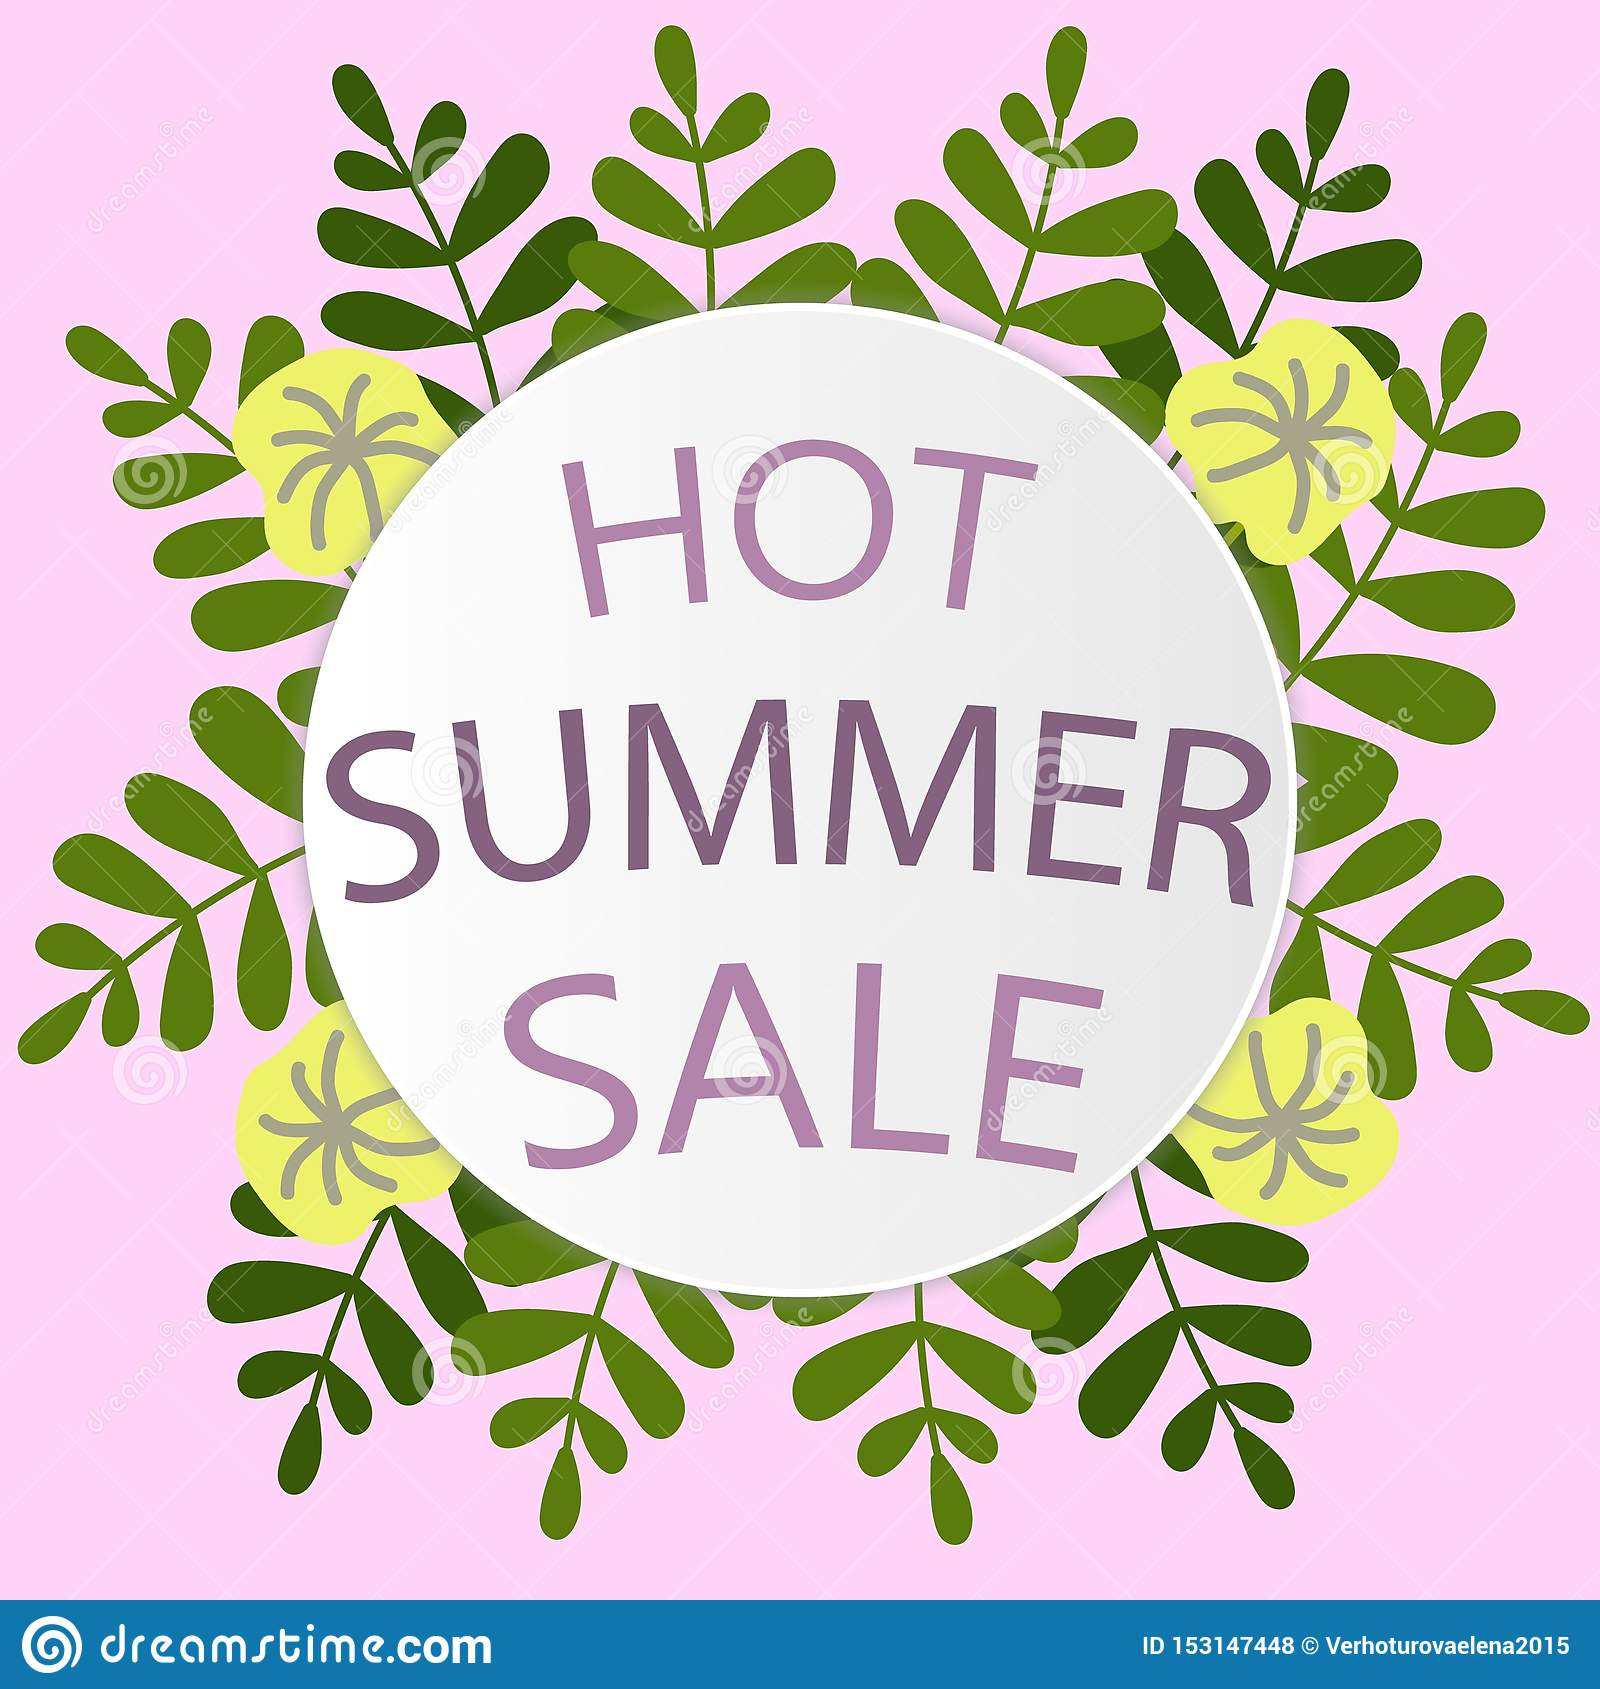 Beautiful Pattern With Green Tropical Leaves Summer Sale On Colorful Background Sale Banner Design Fashion Stock Vector Illustration Of Design Background 153147448